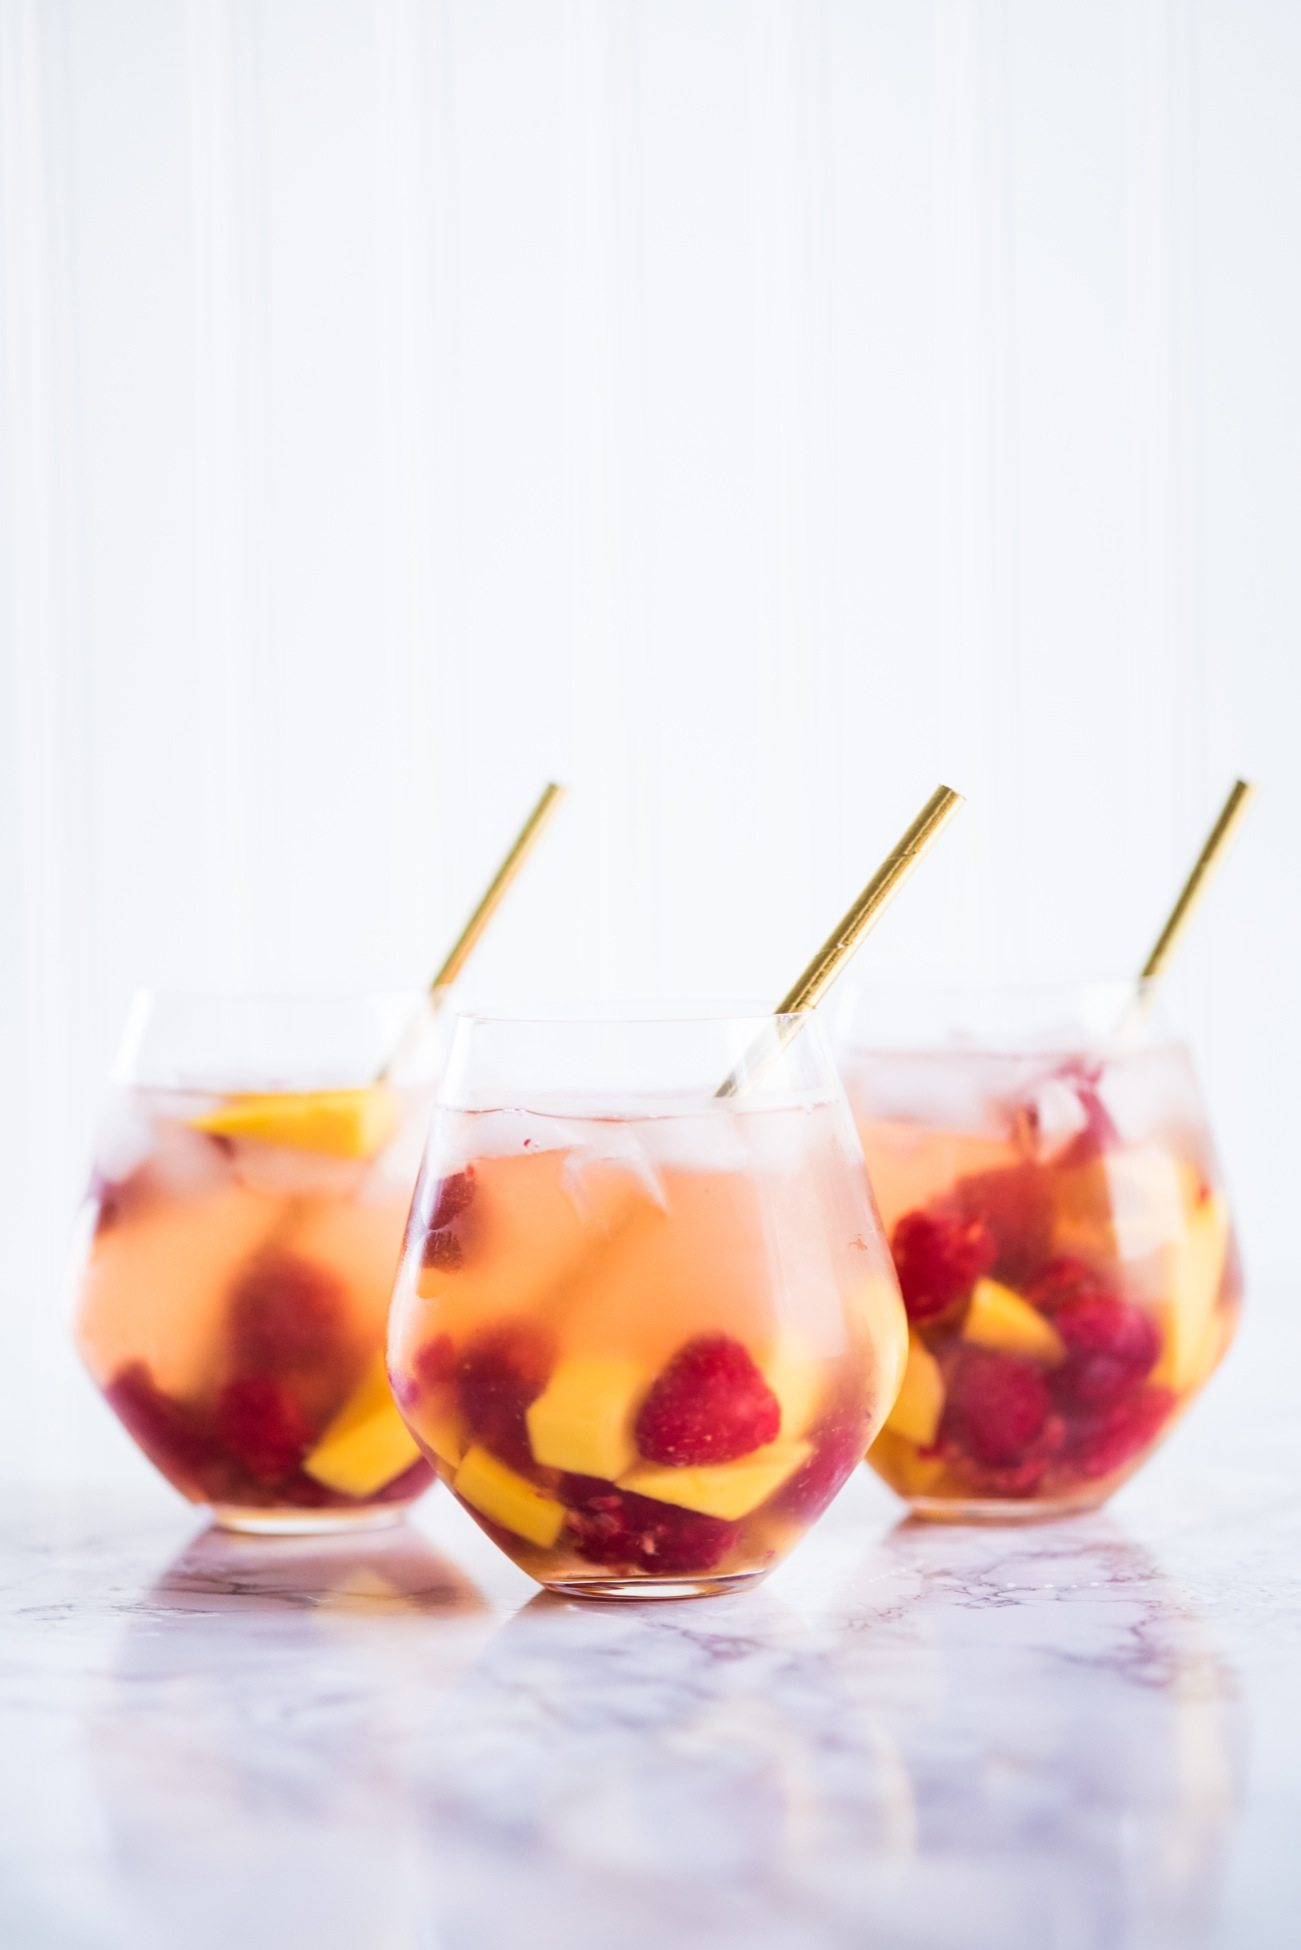 Sparkling Summer Solstice Sangria Recipe   Entertaining tips, cocktail recipes, party ideas, summer solstice ideas and more from @cydconverse